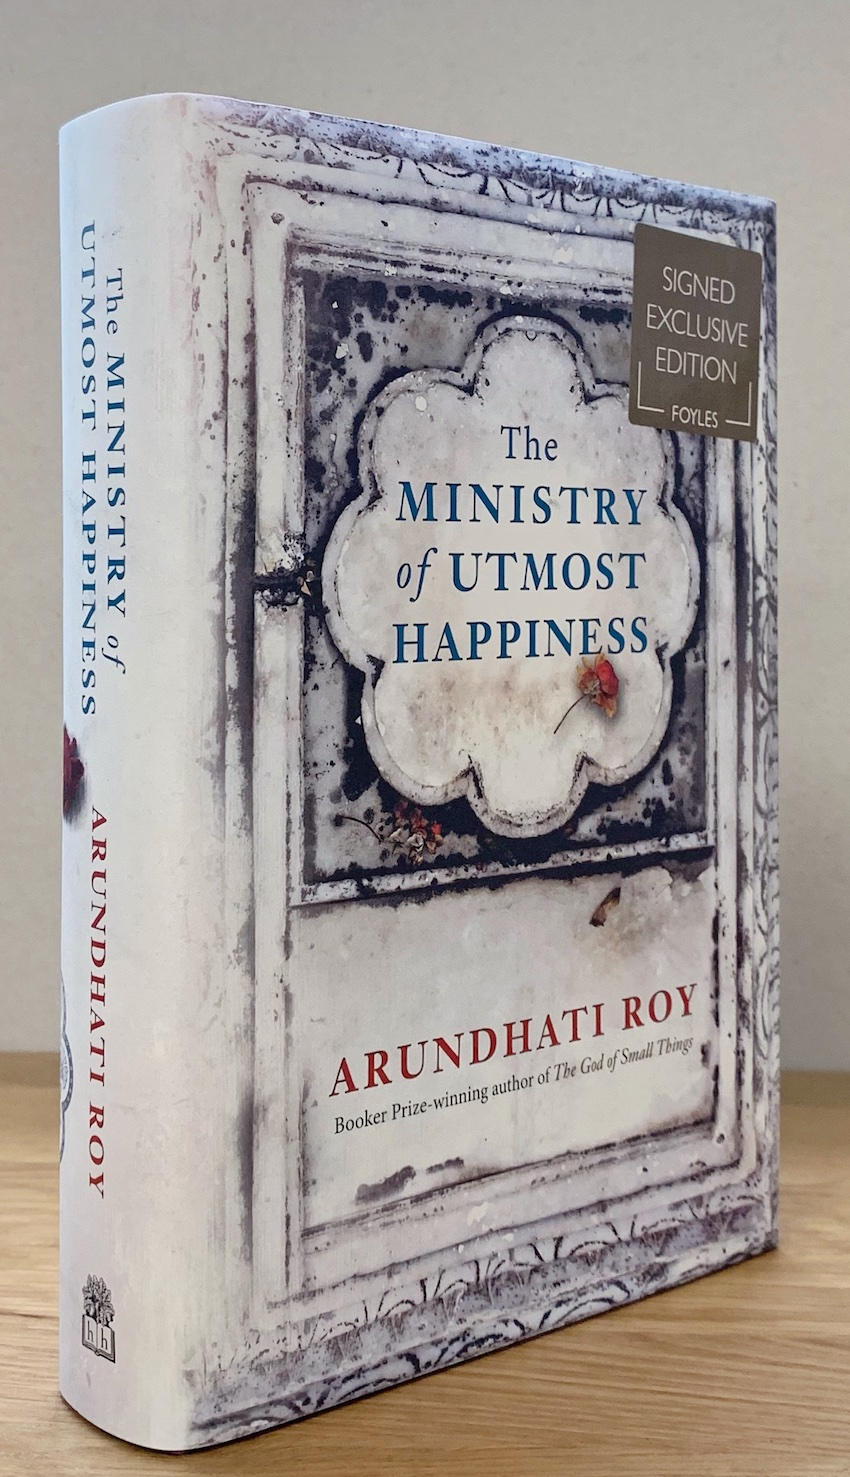 Image for THE MINISTRY OF UTMOST HAPPINESS - Signed Exclusive Edition